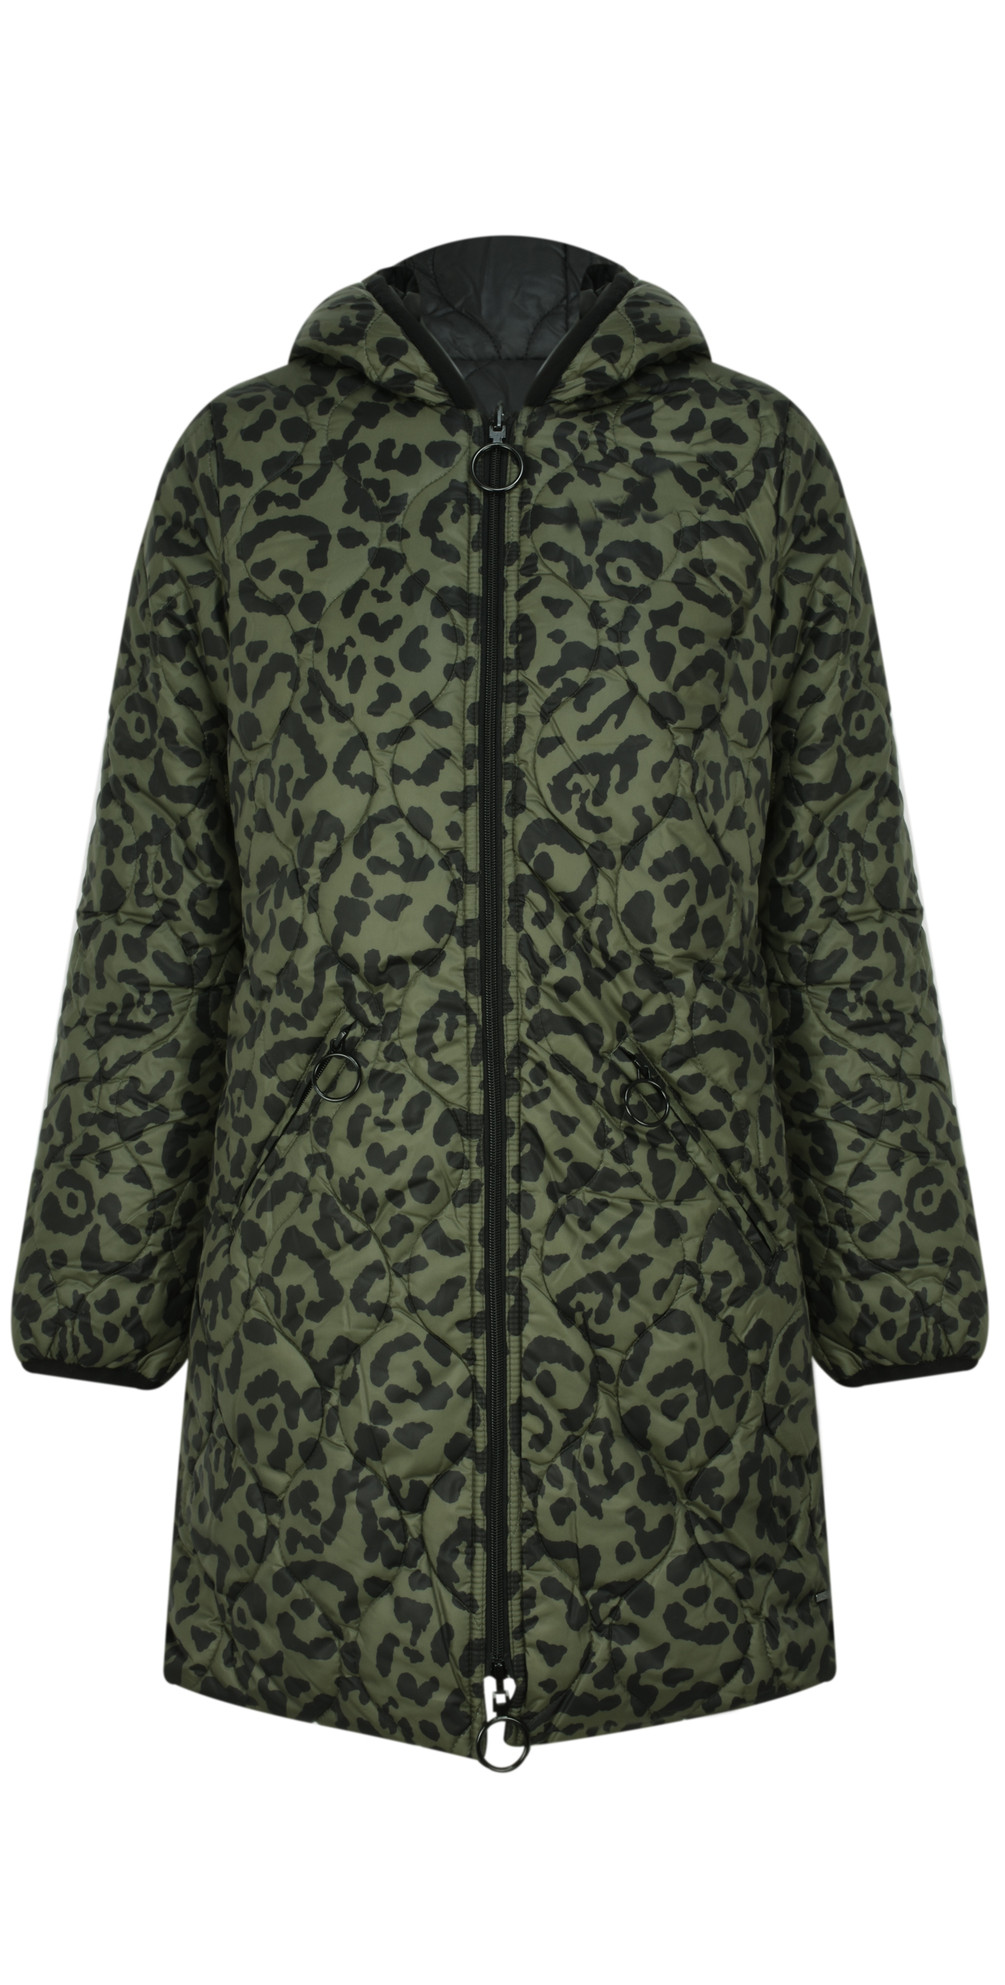 532bfa7a2617 RINO AND PELLE Reversible Animal Print Quilted Arizona Coat in ...